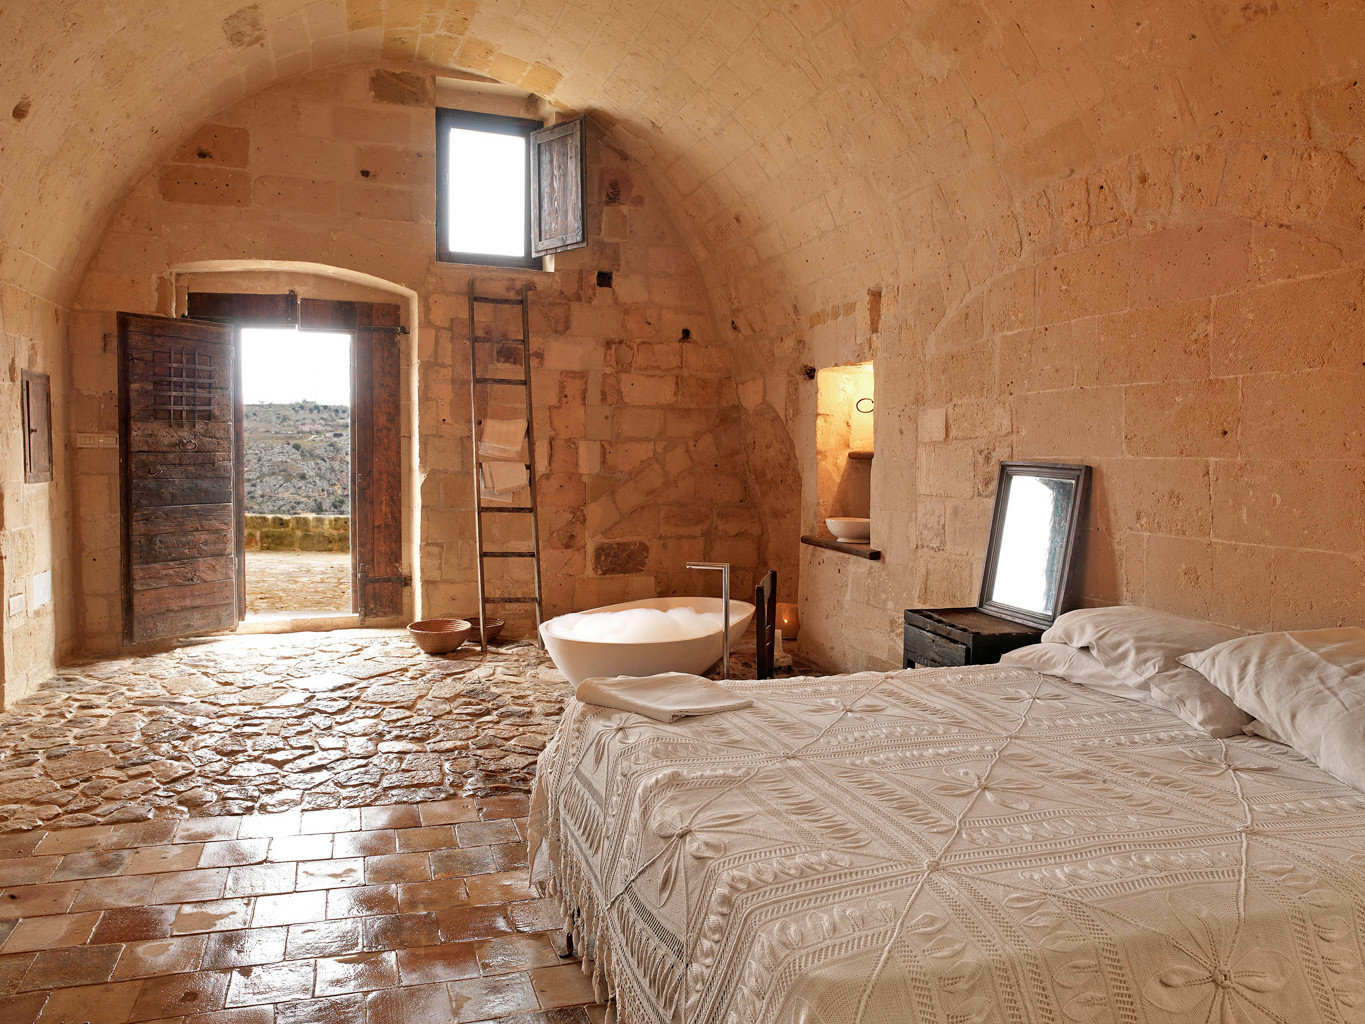 B&B Bedroom Boutique Country Historic Hotels Romance Romantic Trip Ideas indoor wall bed room property building estate floor cottage farmhouse wood interior design Villa Suite furniture stone